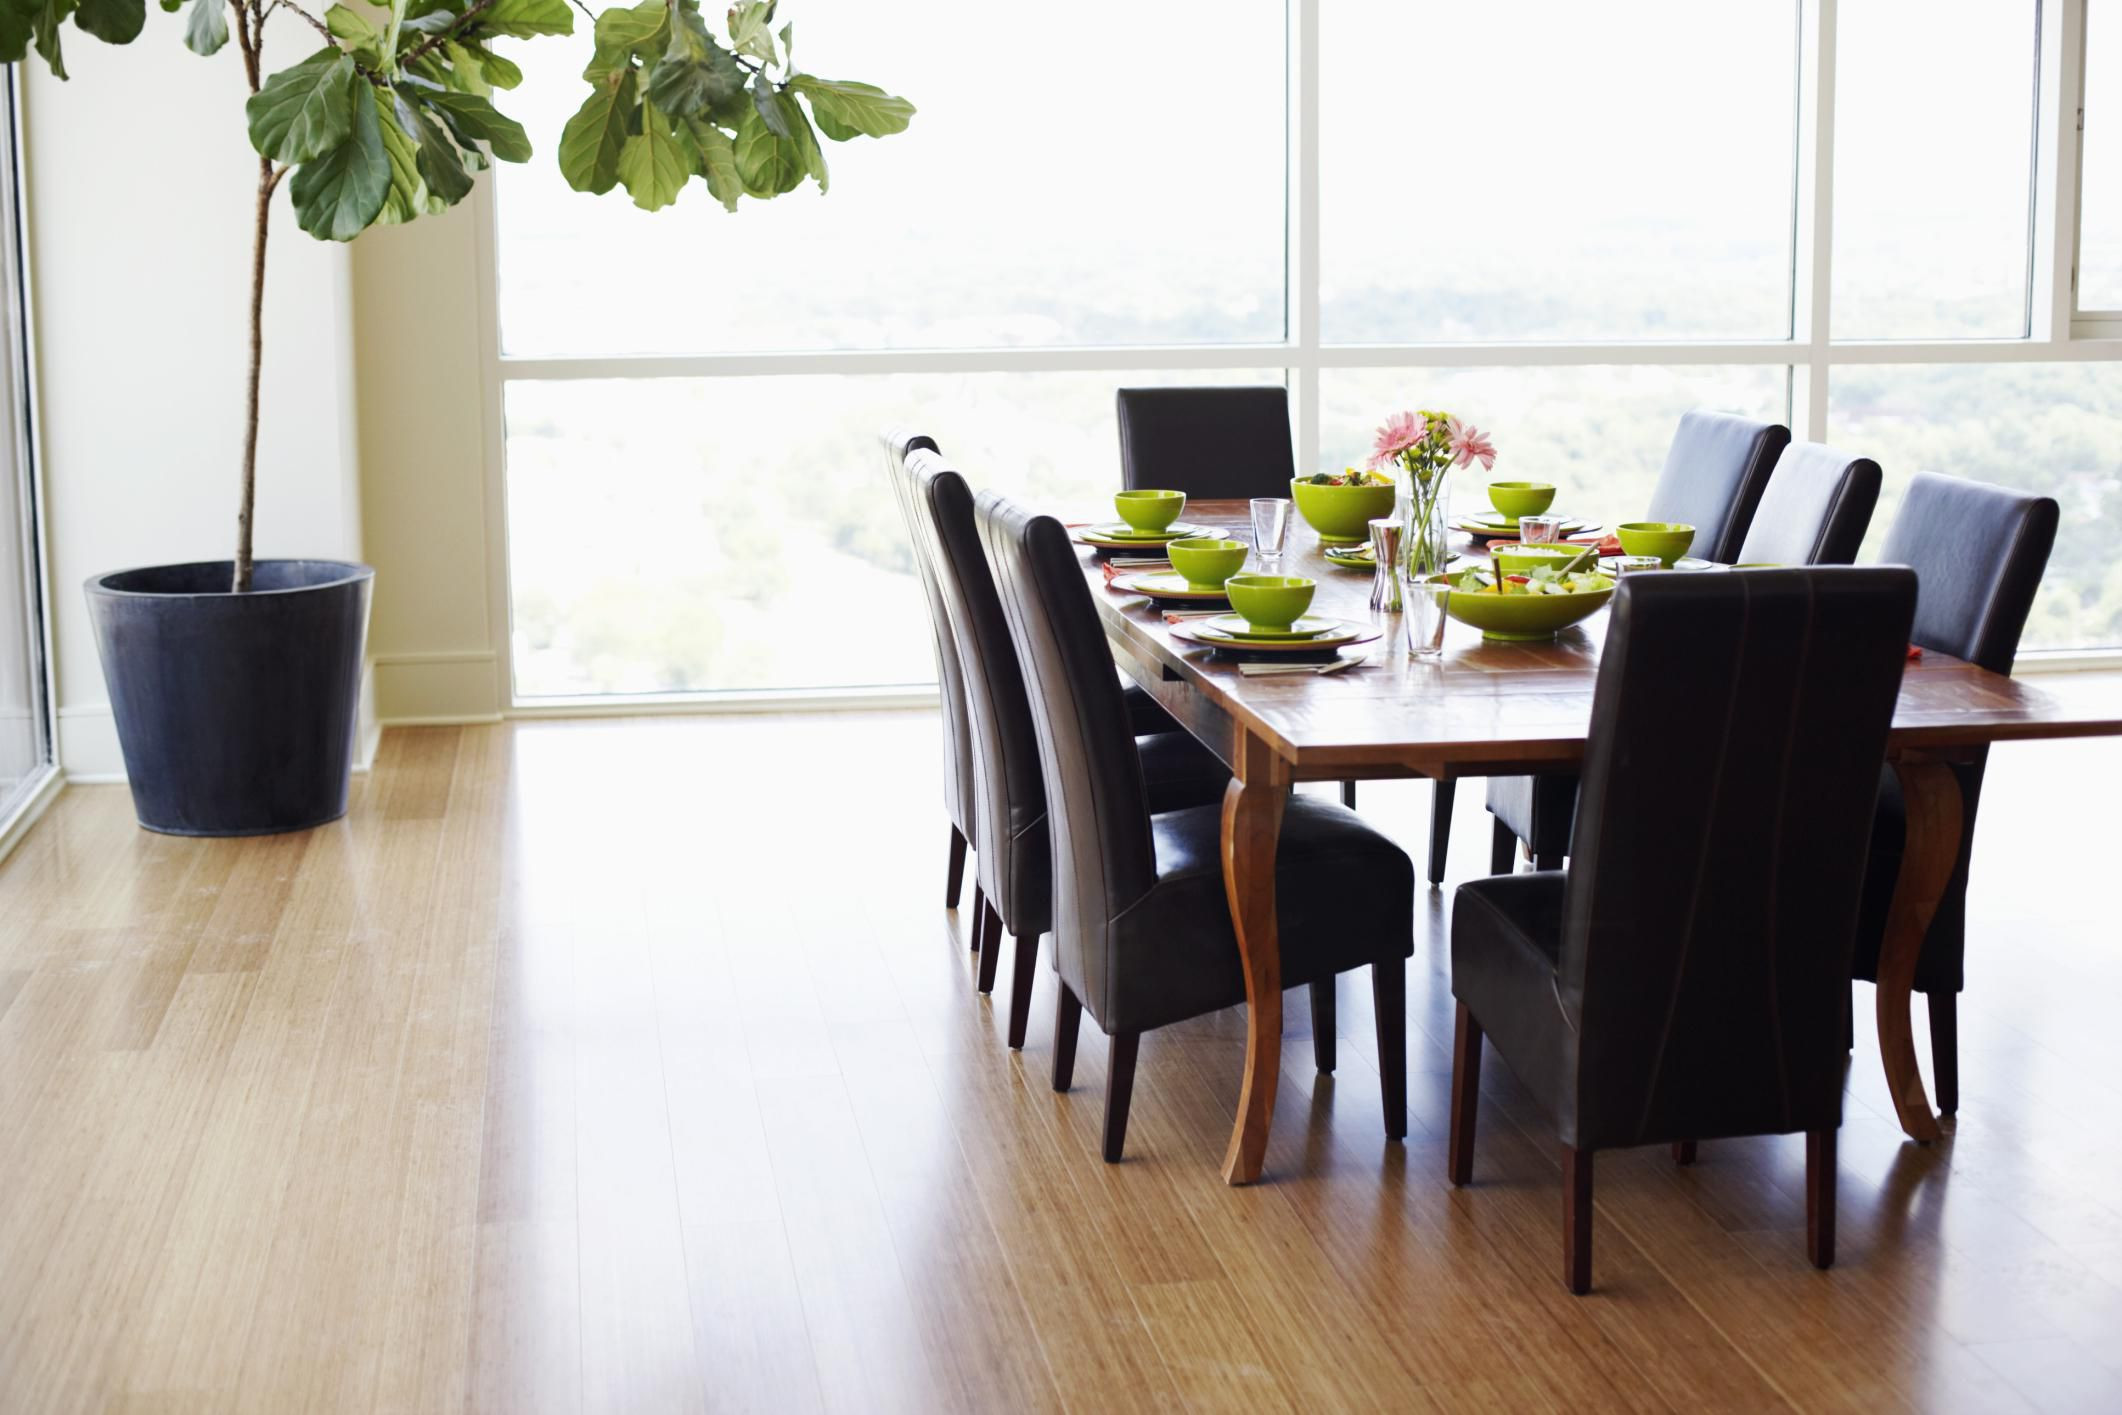 tavern grade hardwood flooring canada of plastic laminate flooring is there a waterproof option with regard to 76350675 1 56a49e255f9b58b7d0d7dd5c